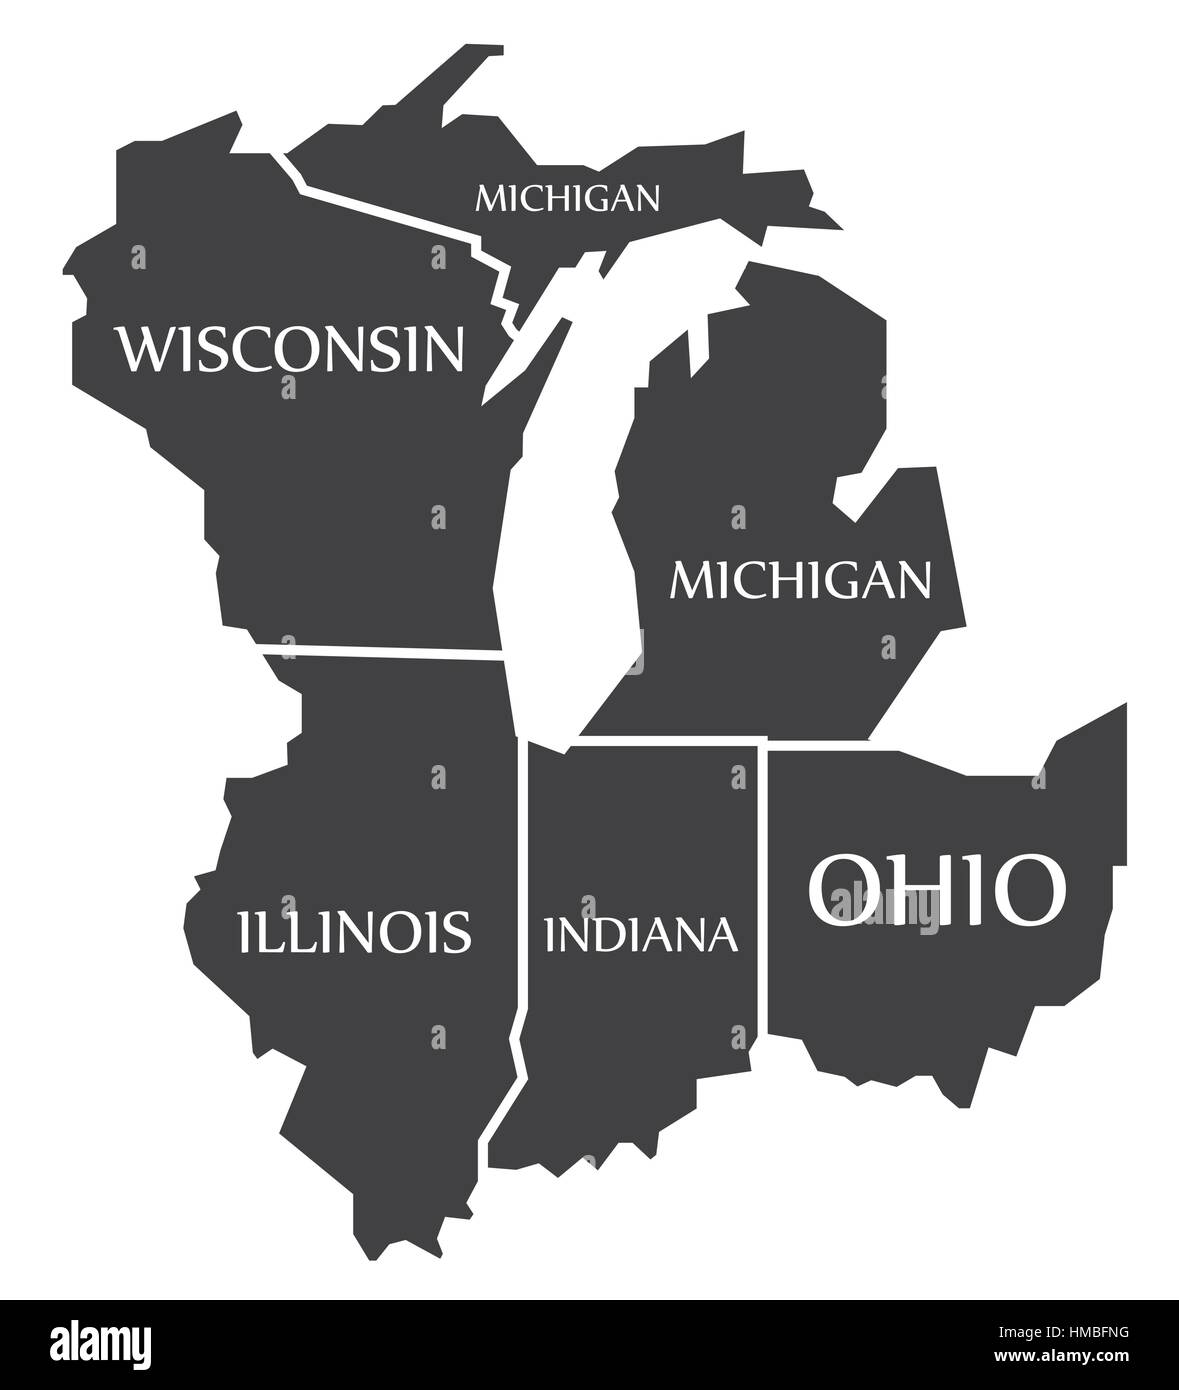 Michigan And Indiana Map.Michigan Wisconsin Illinois Indiana Ohio Map Labelled Black